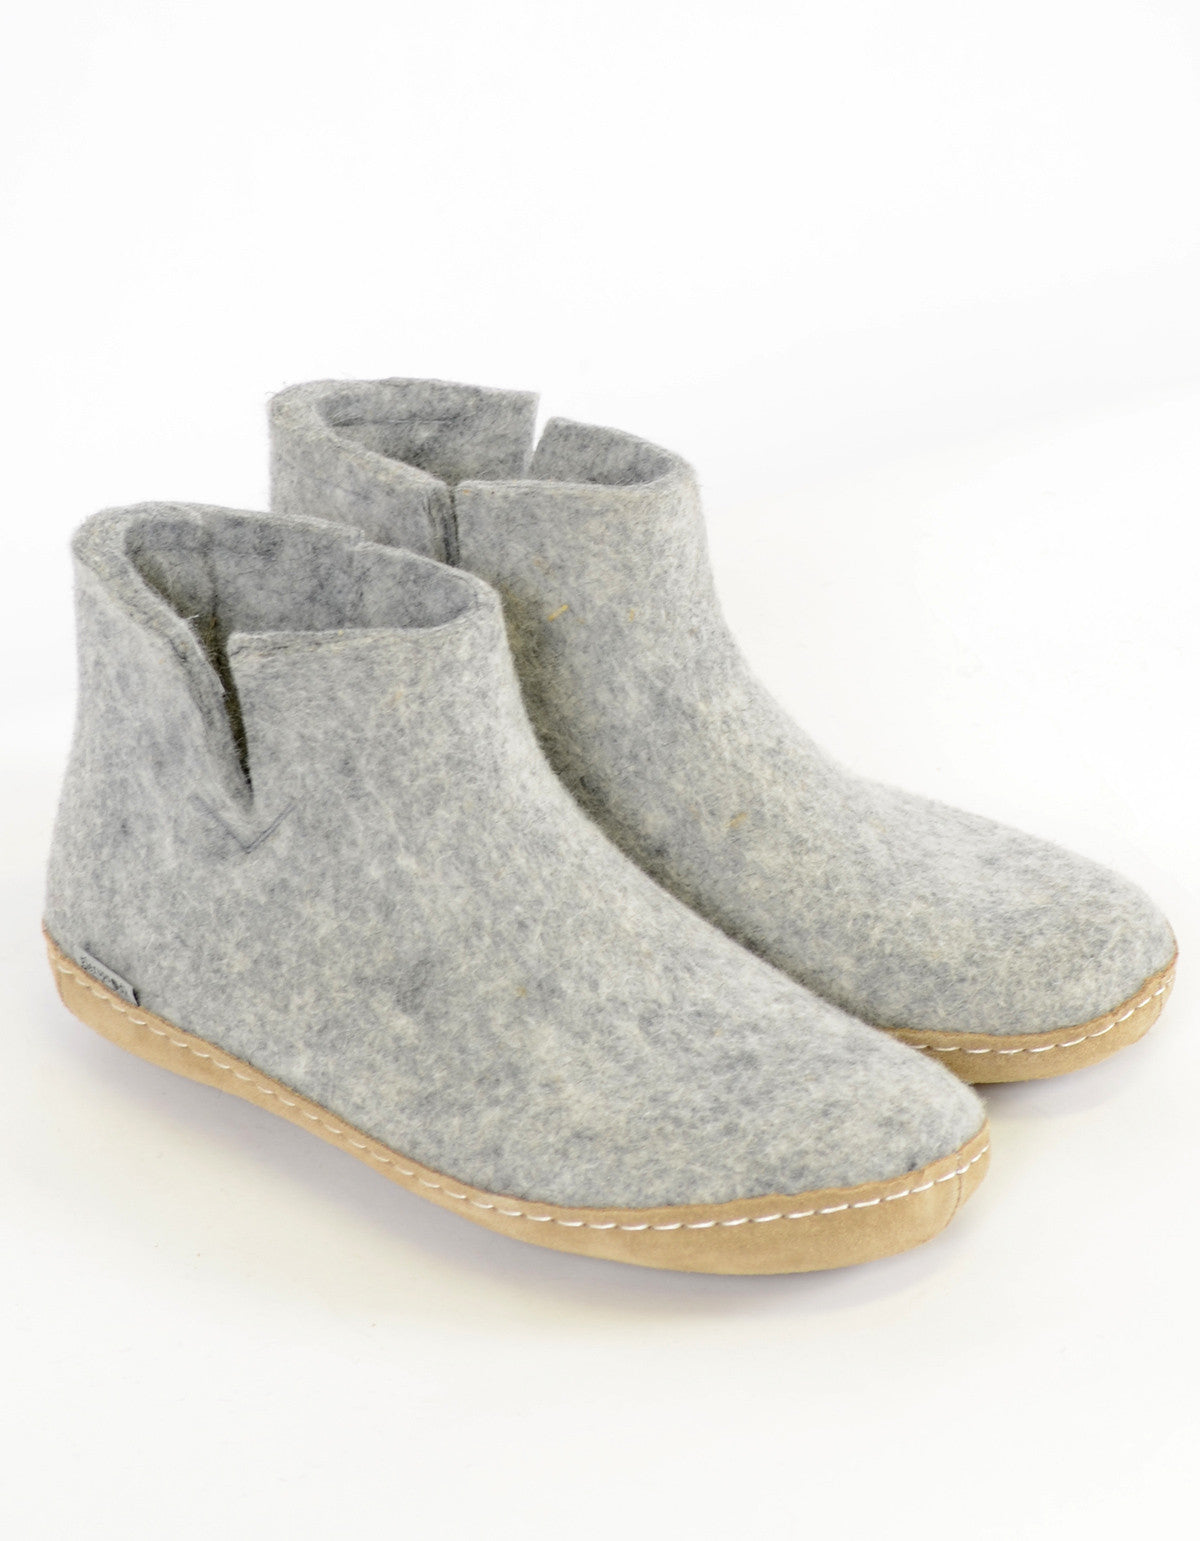 Glerups Women's Wool Boot Leather Sole Grey - Still Life - 3